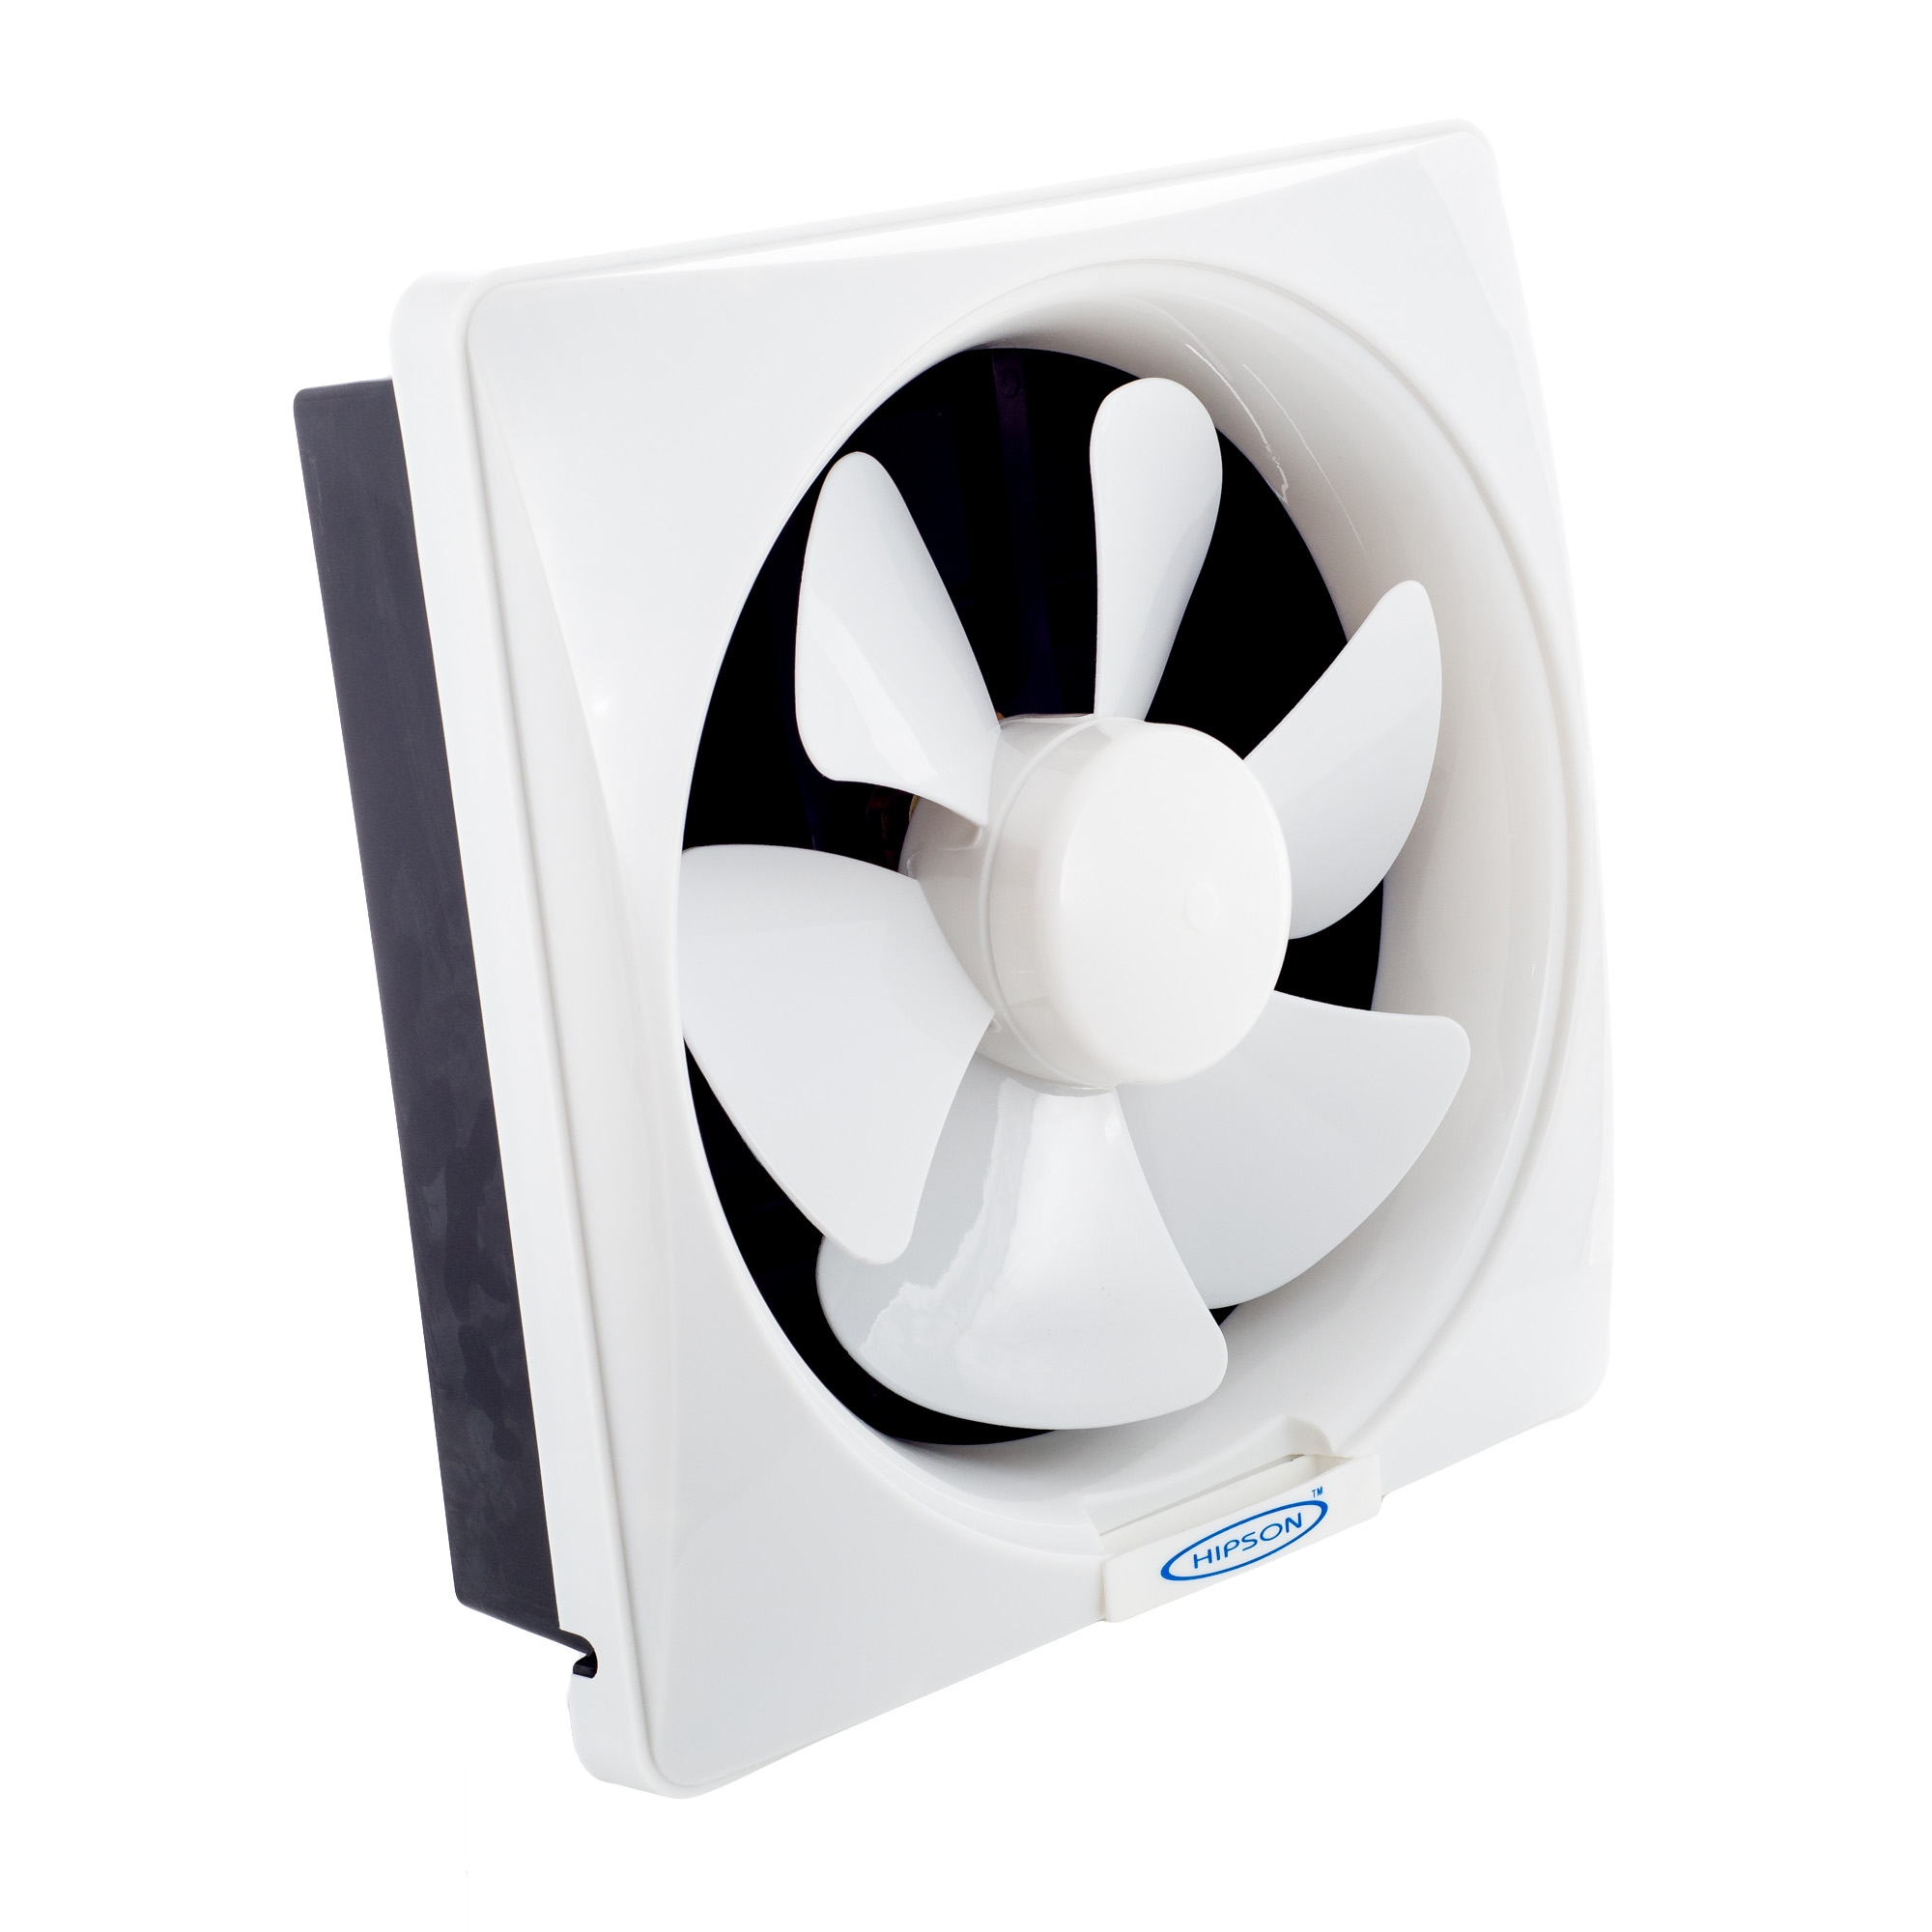 Hipson 12' PVC Exhaust Fan- Wall Type